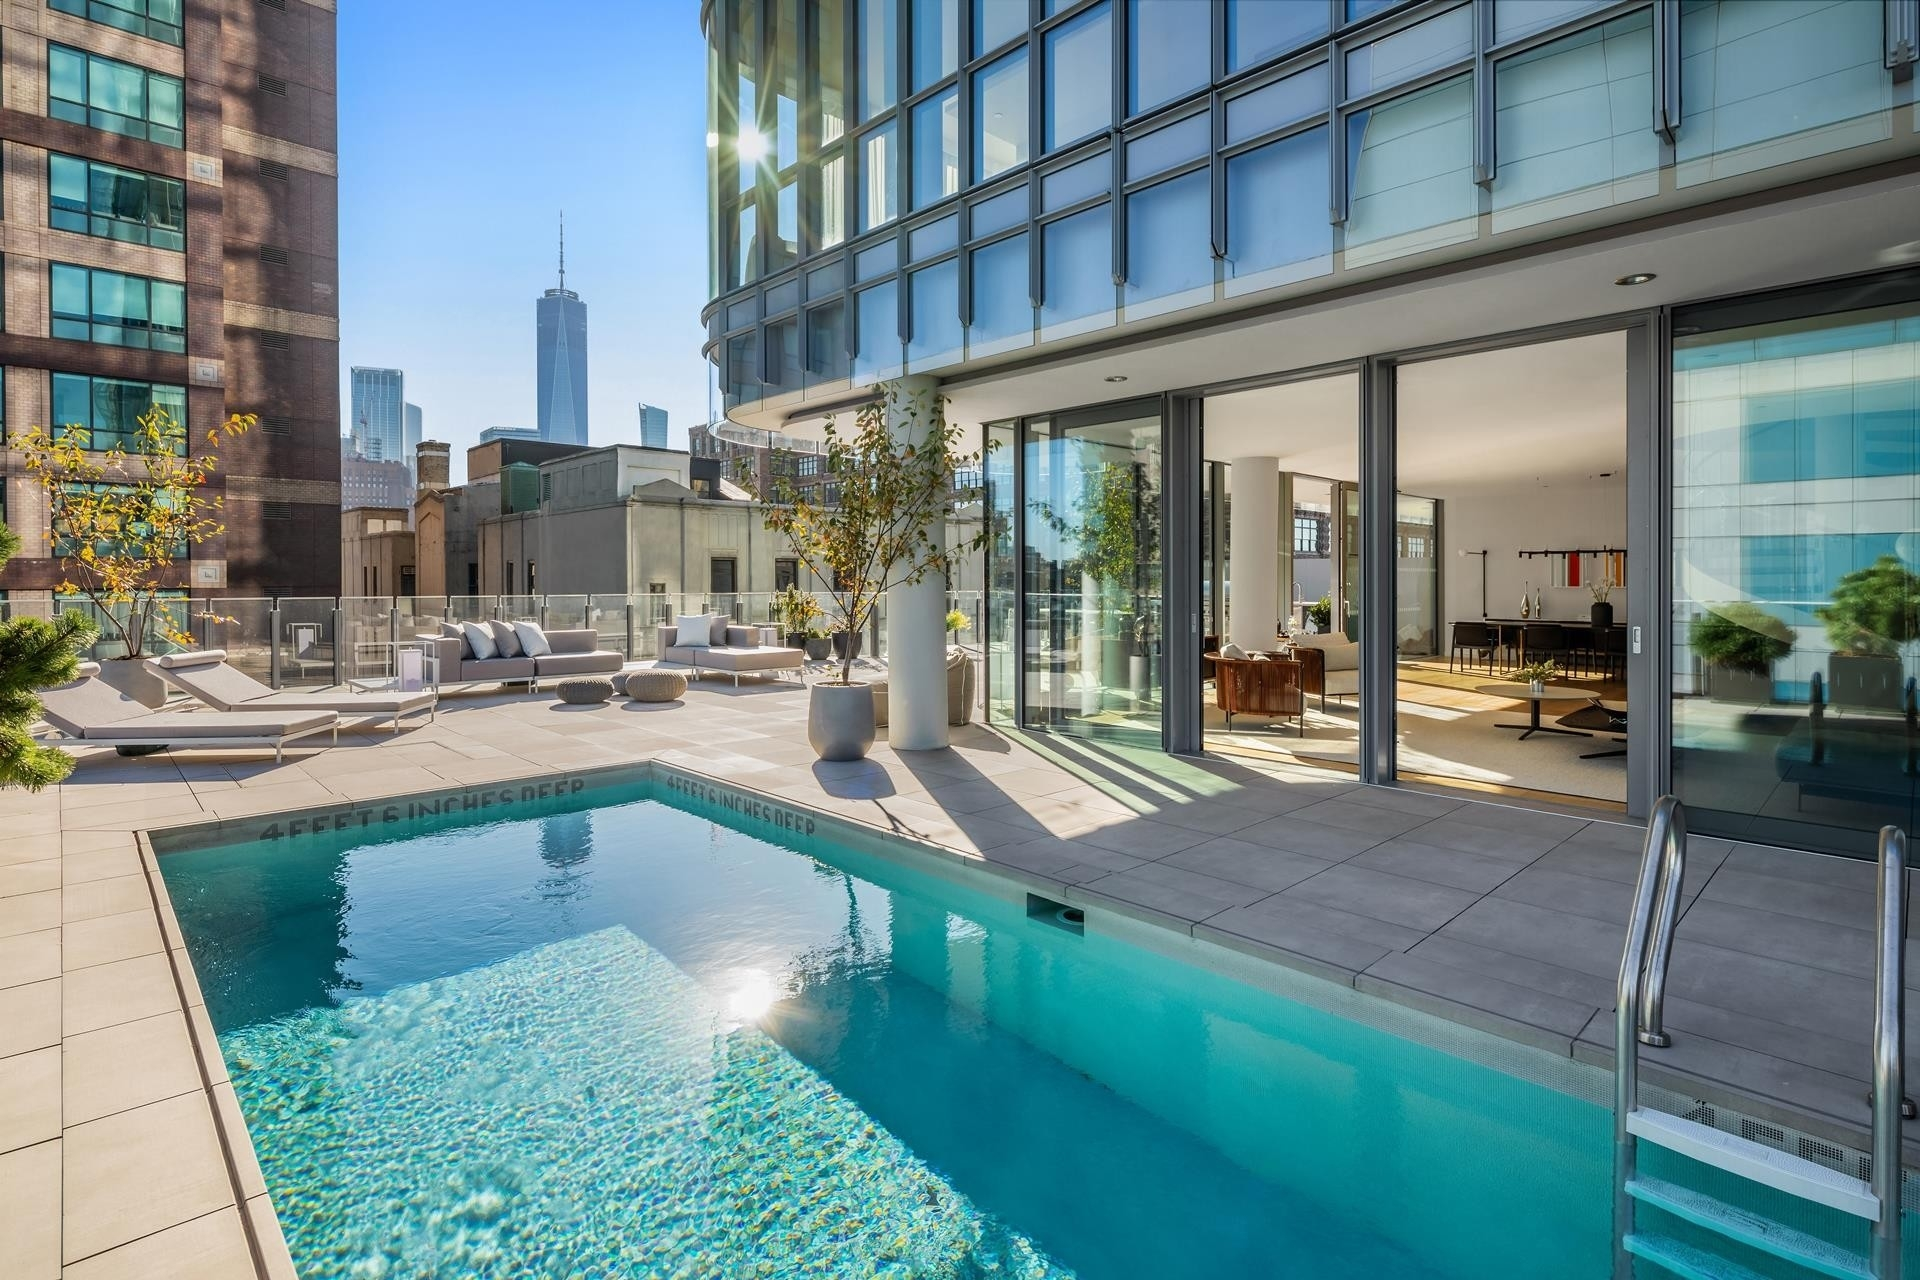 Property at 565 Broome St, S16B Hudson Square, New York, NY 10013